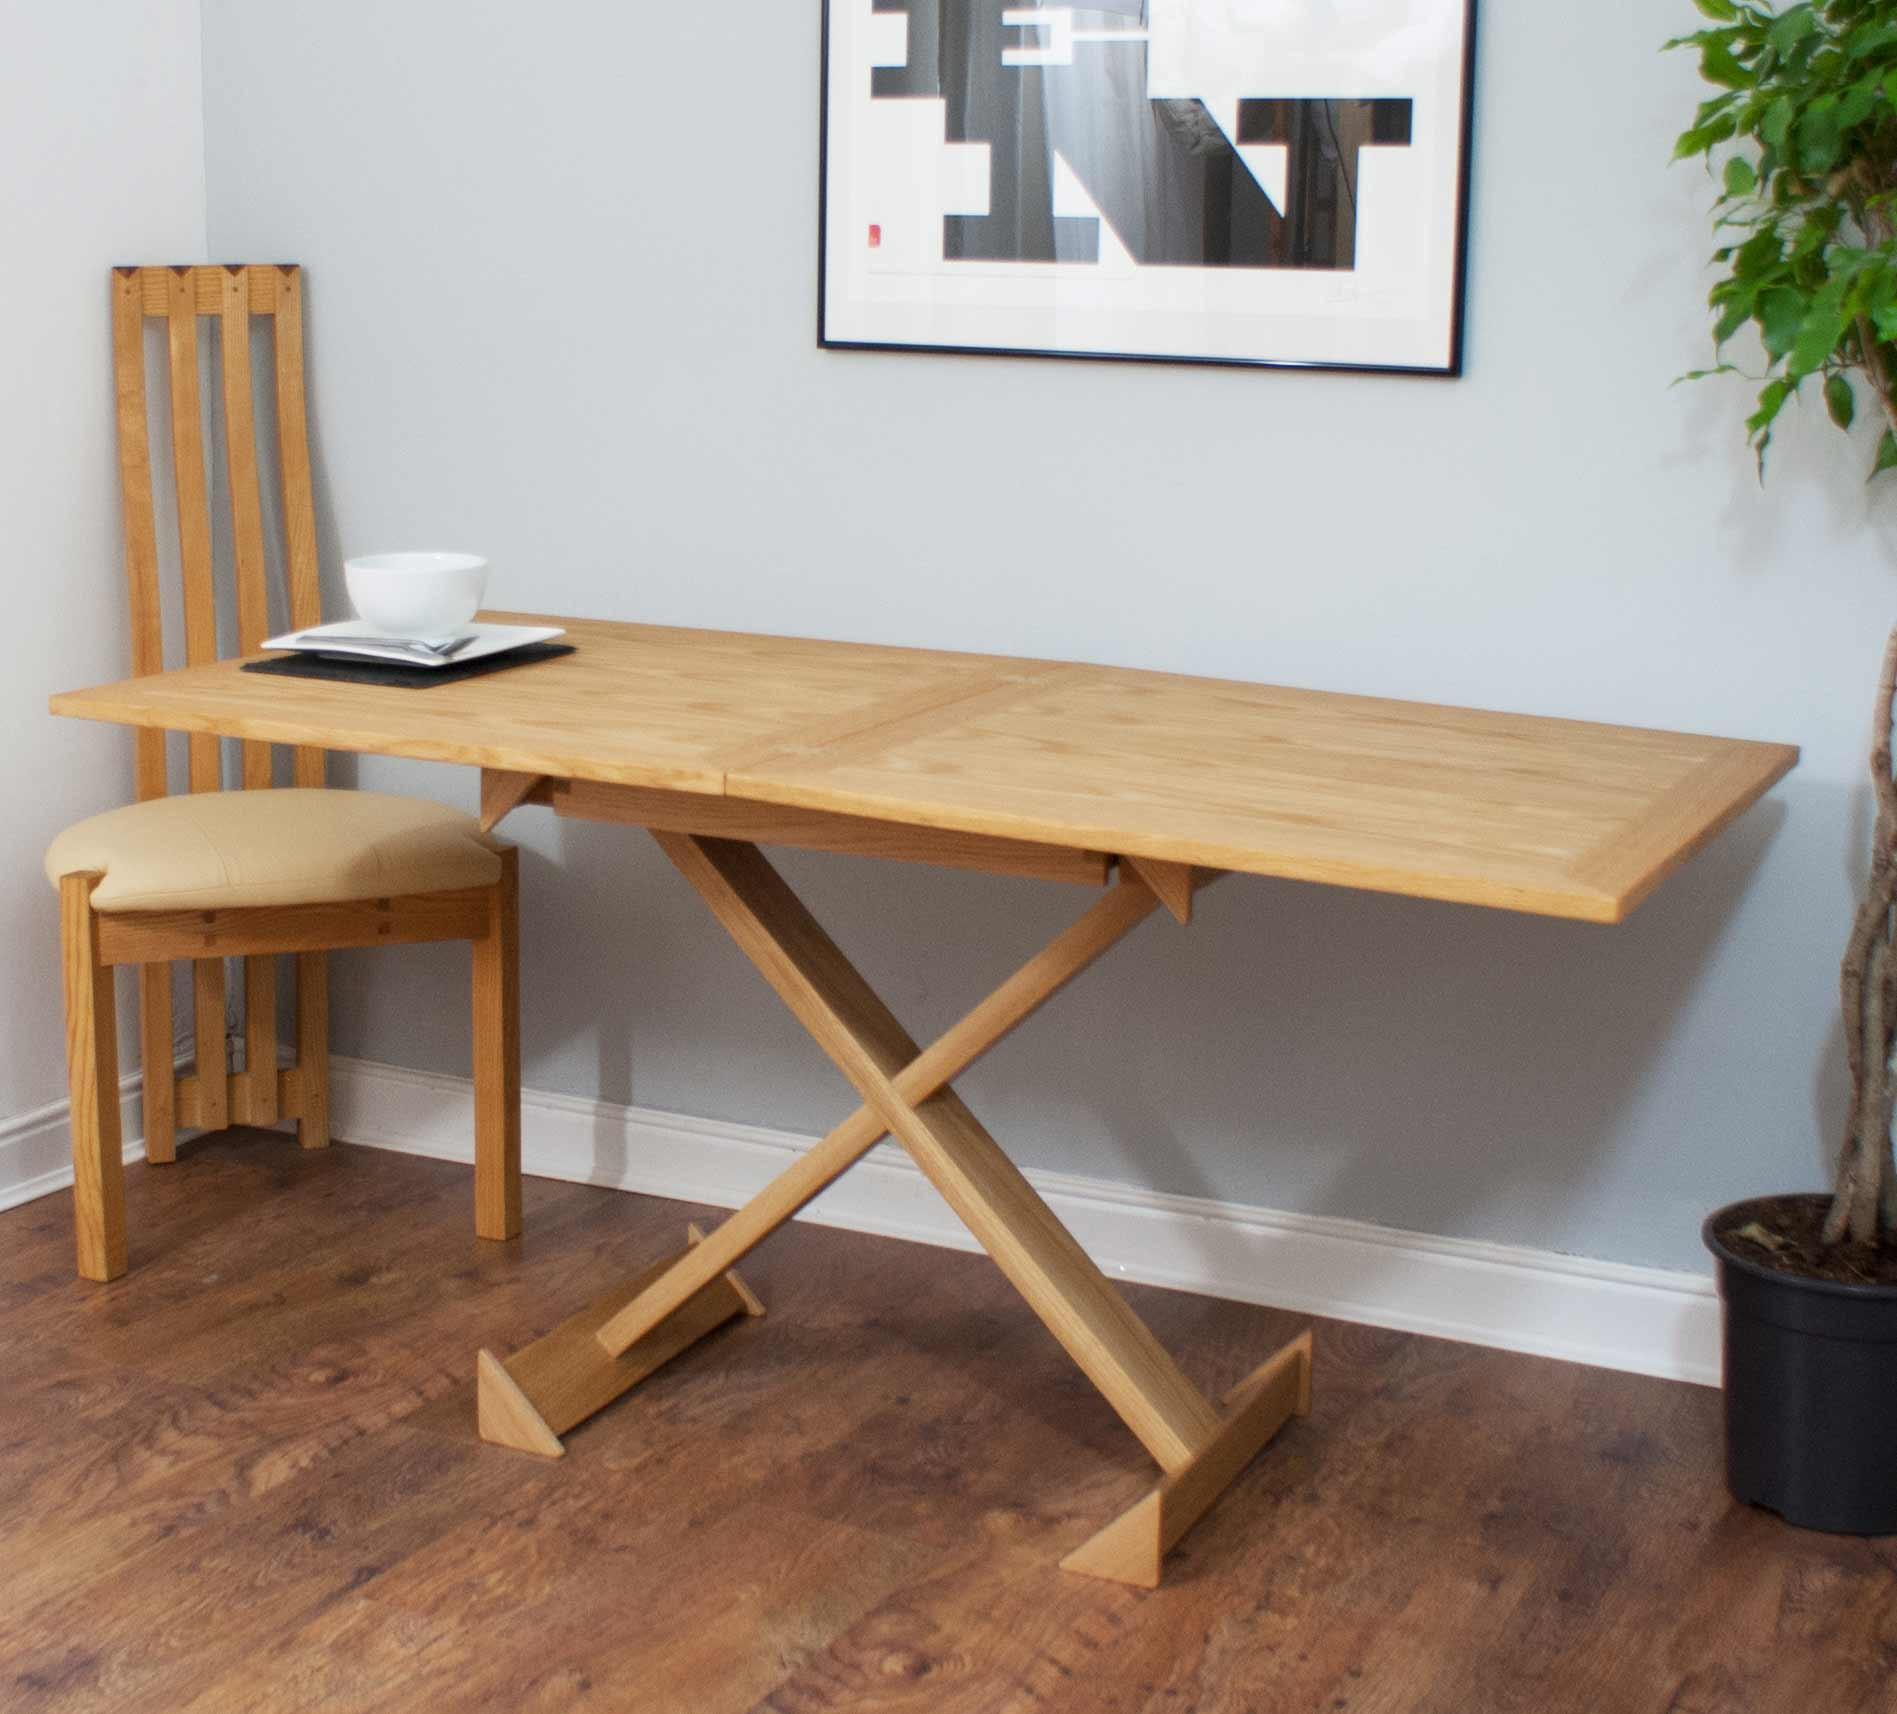 Best ideas about Coffee Table To Dining Table . Save or Pin converting coffee table to dining table Now.